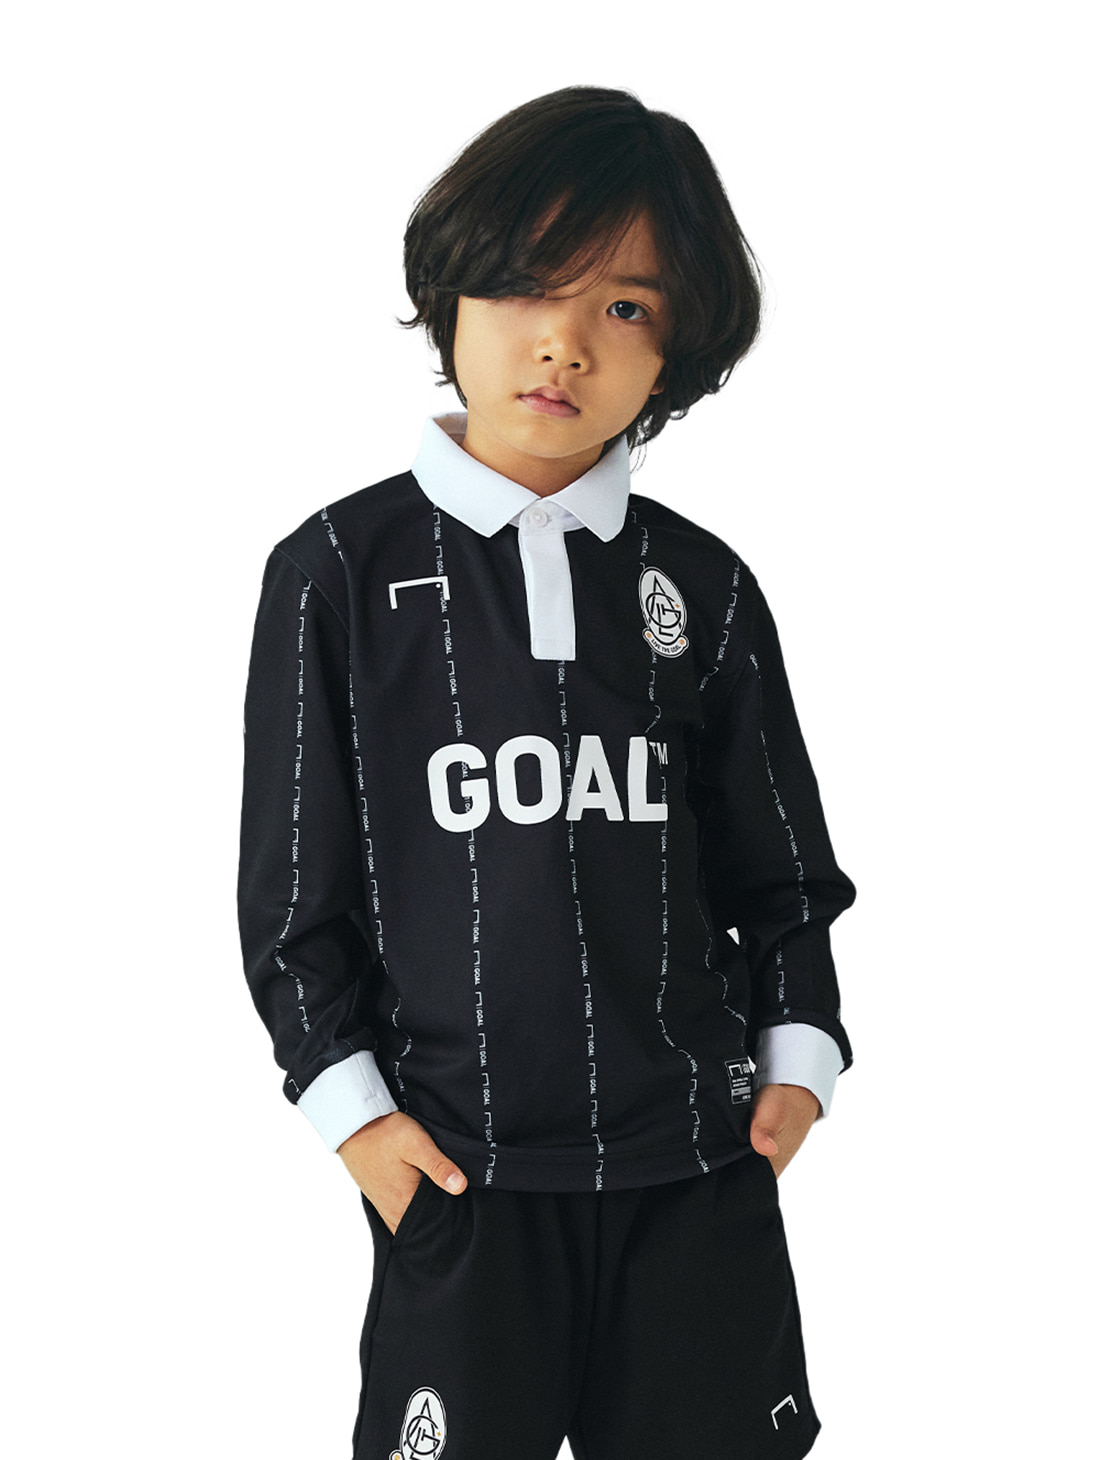 (KIDS) PLAYER EMBLEM JERSEY - BLACK